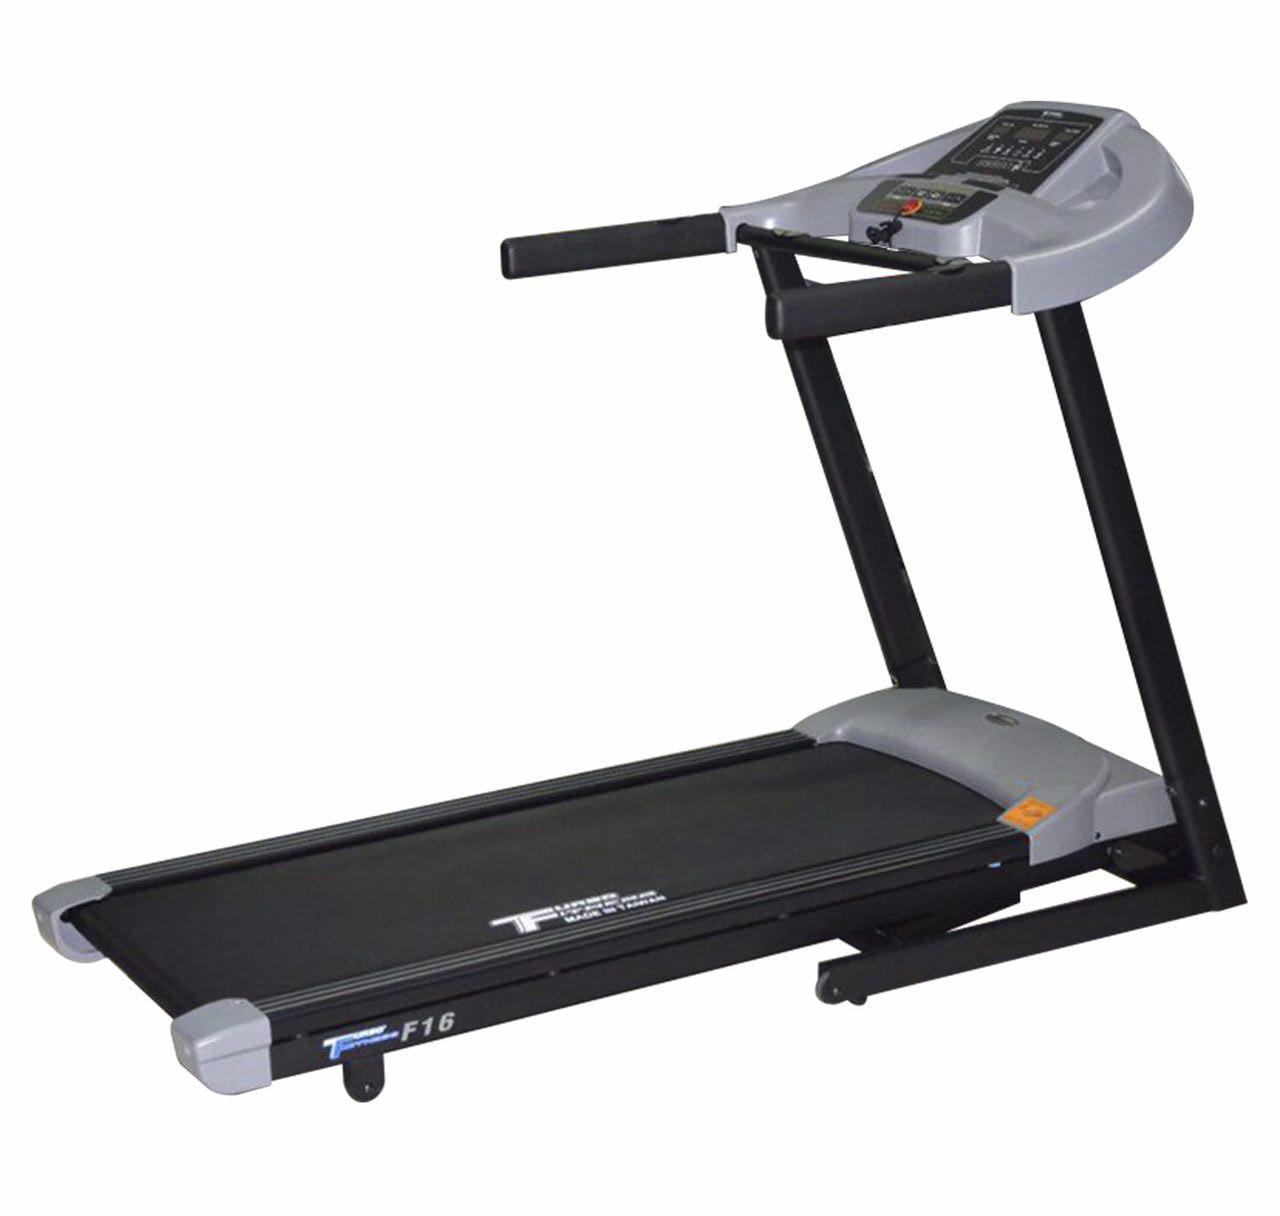 Turbo Fitness F16 Treadmills